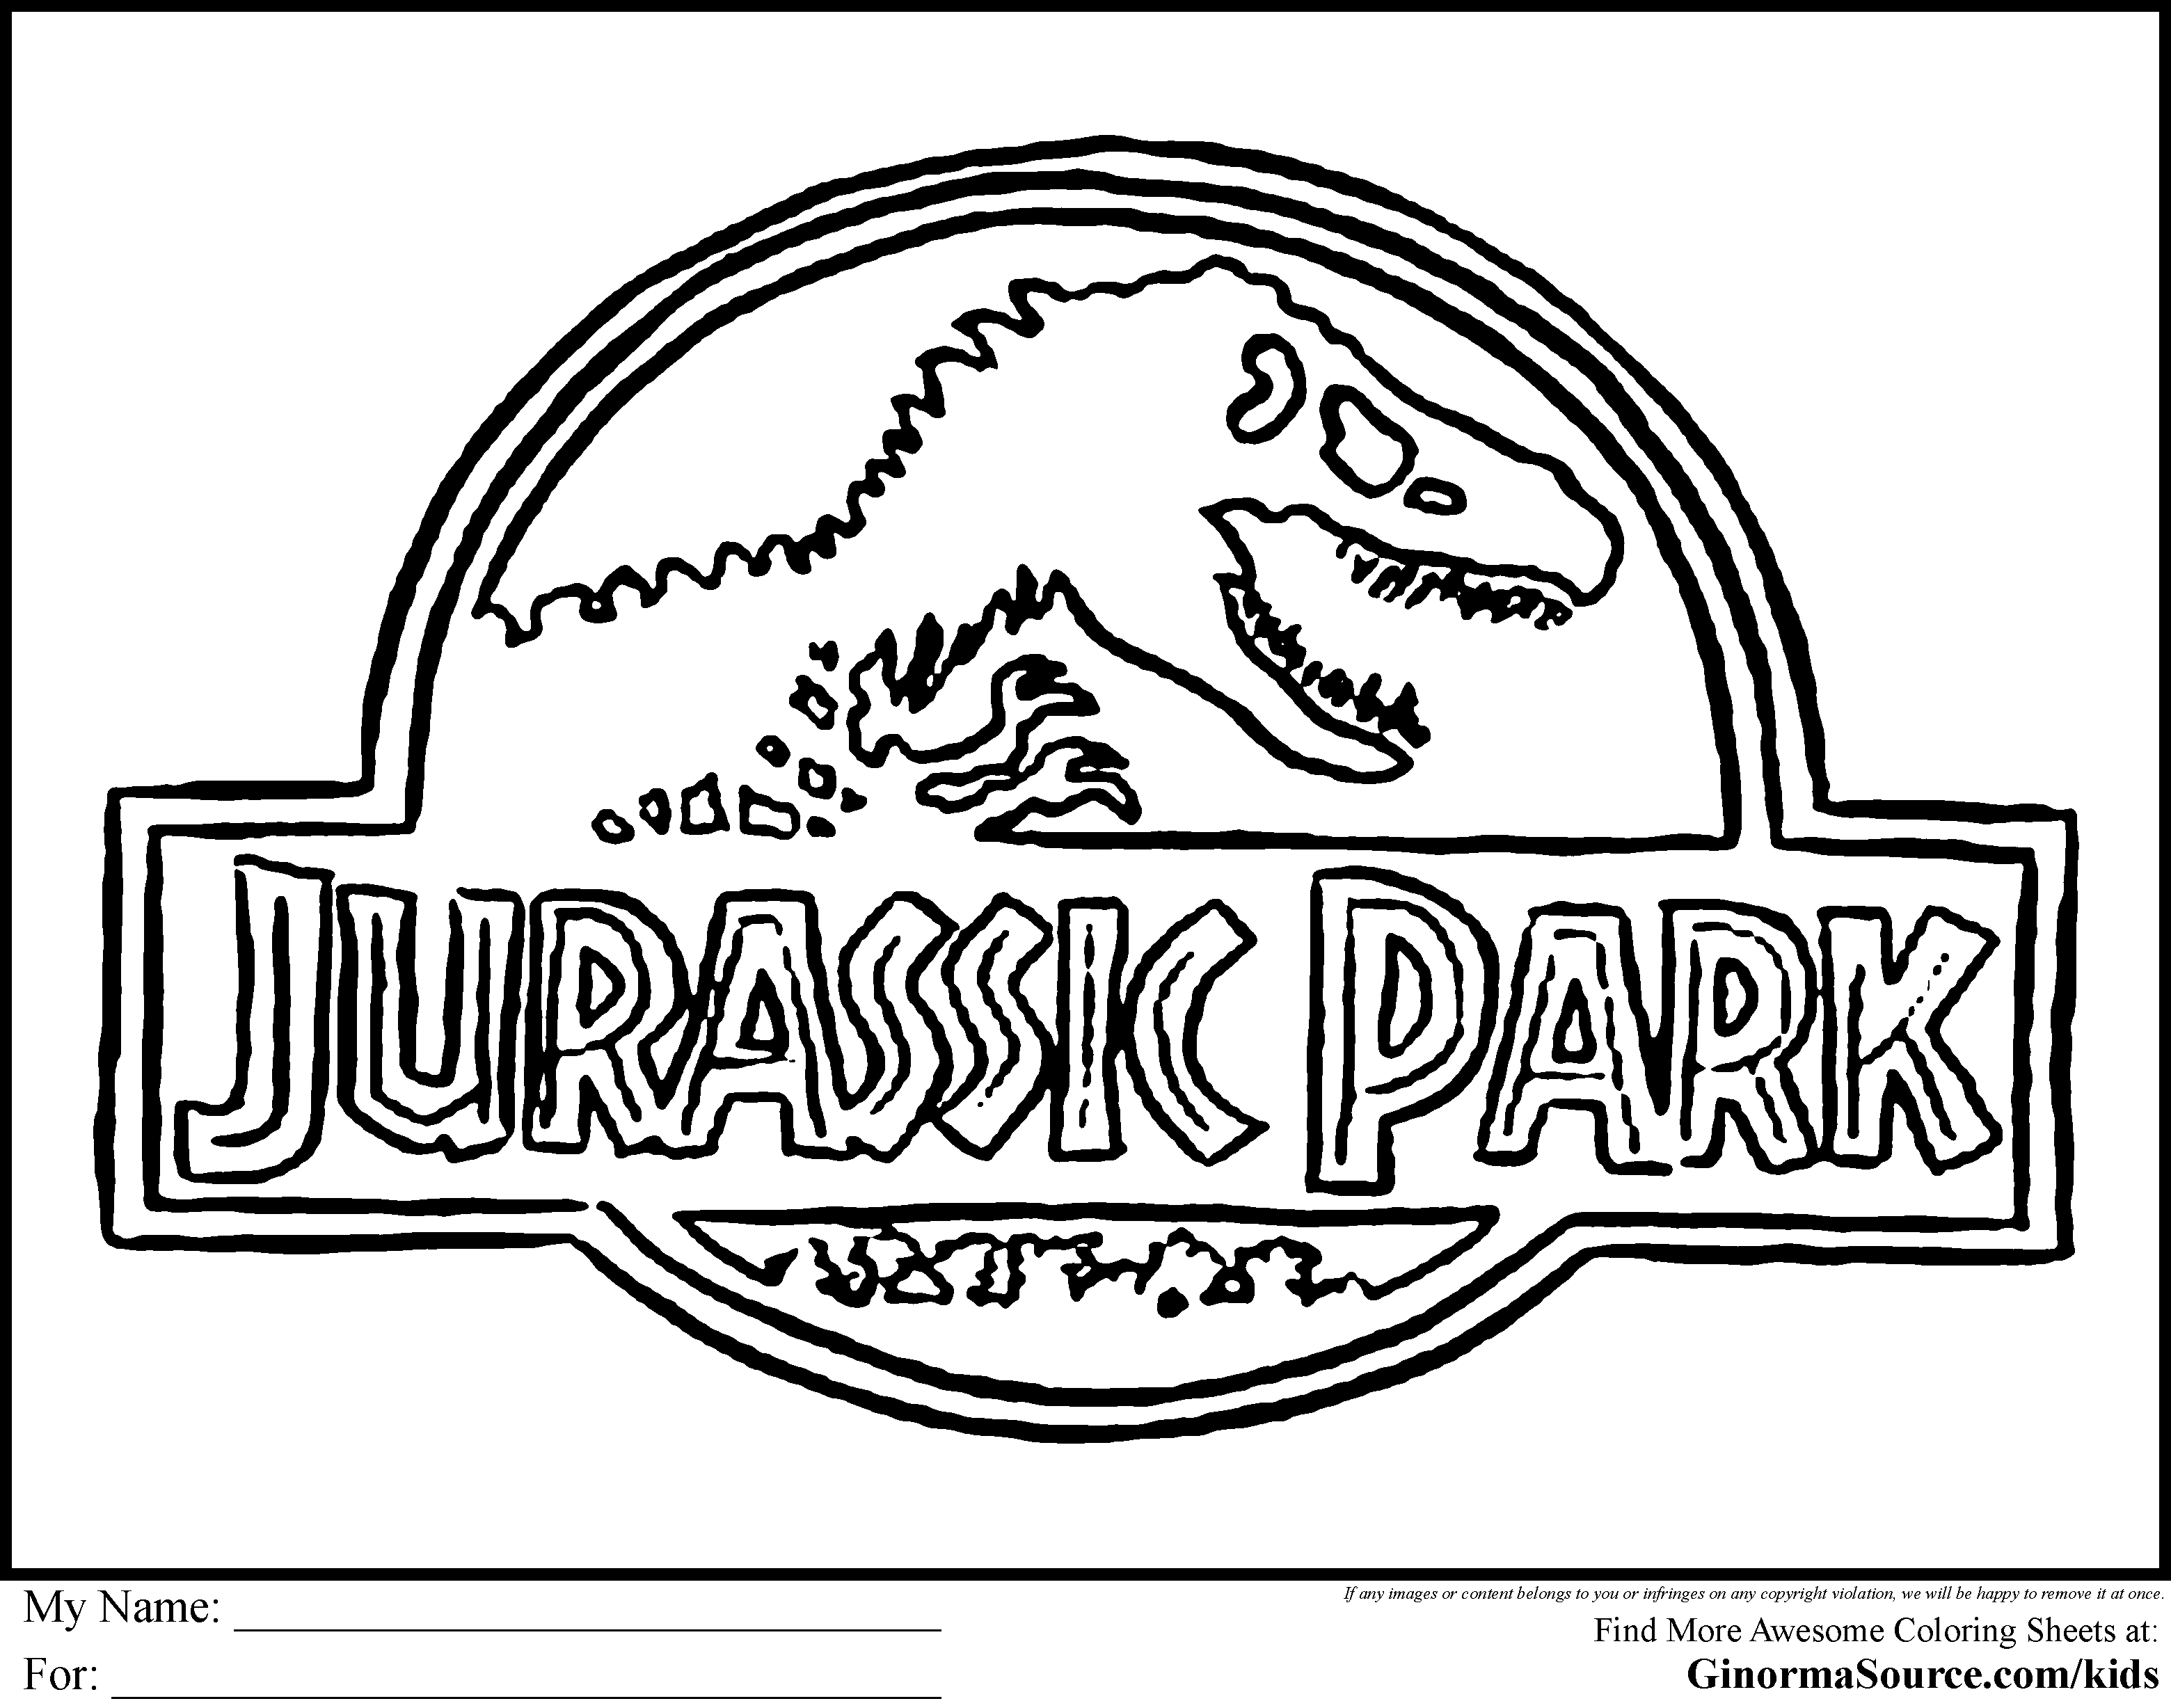 Jurassic Park Coloring Pages Google Search Cameo Crafting